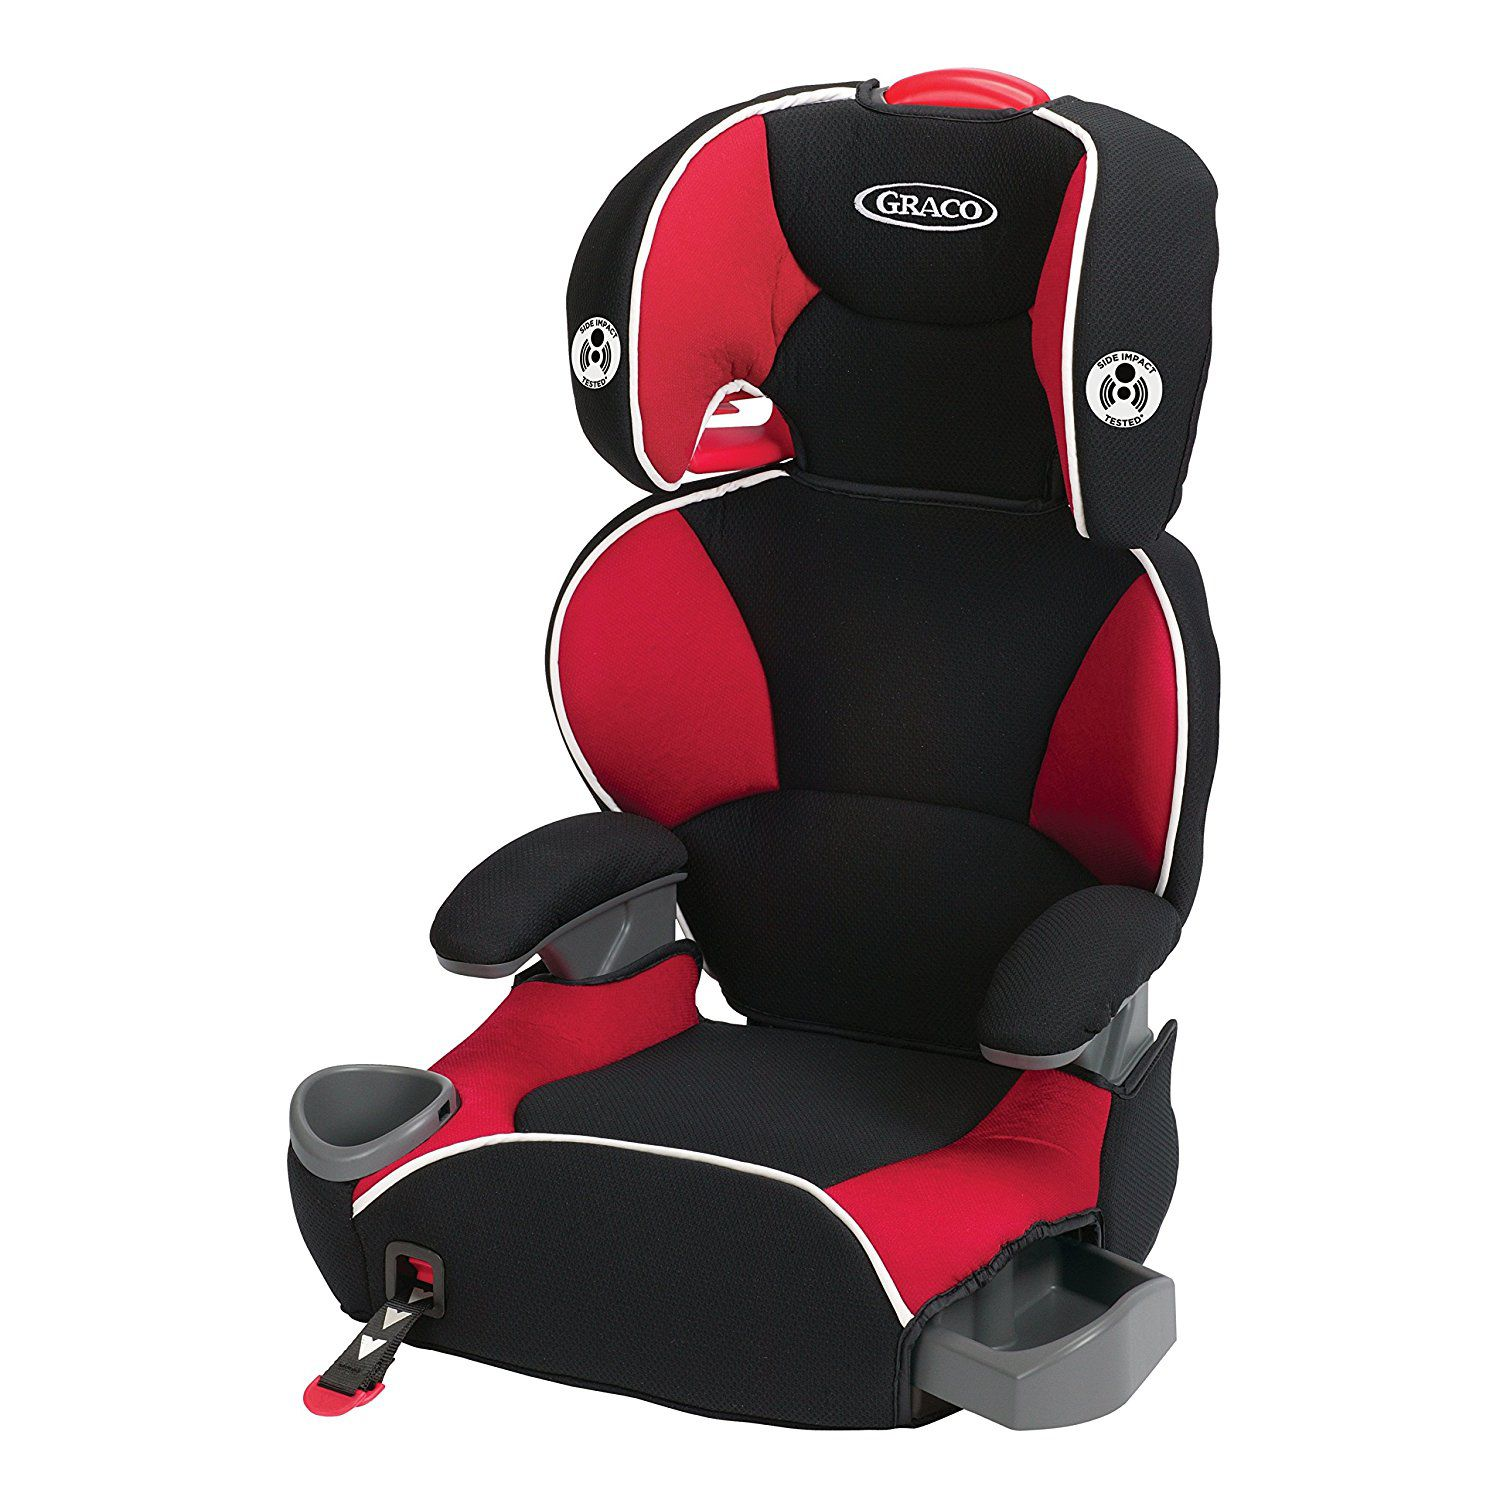 The 7 Best Booster Seats To Buy In 2018